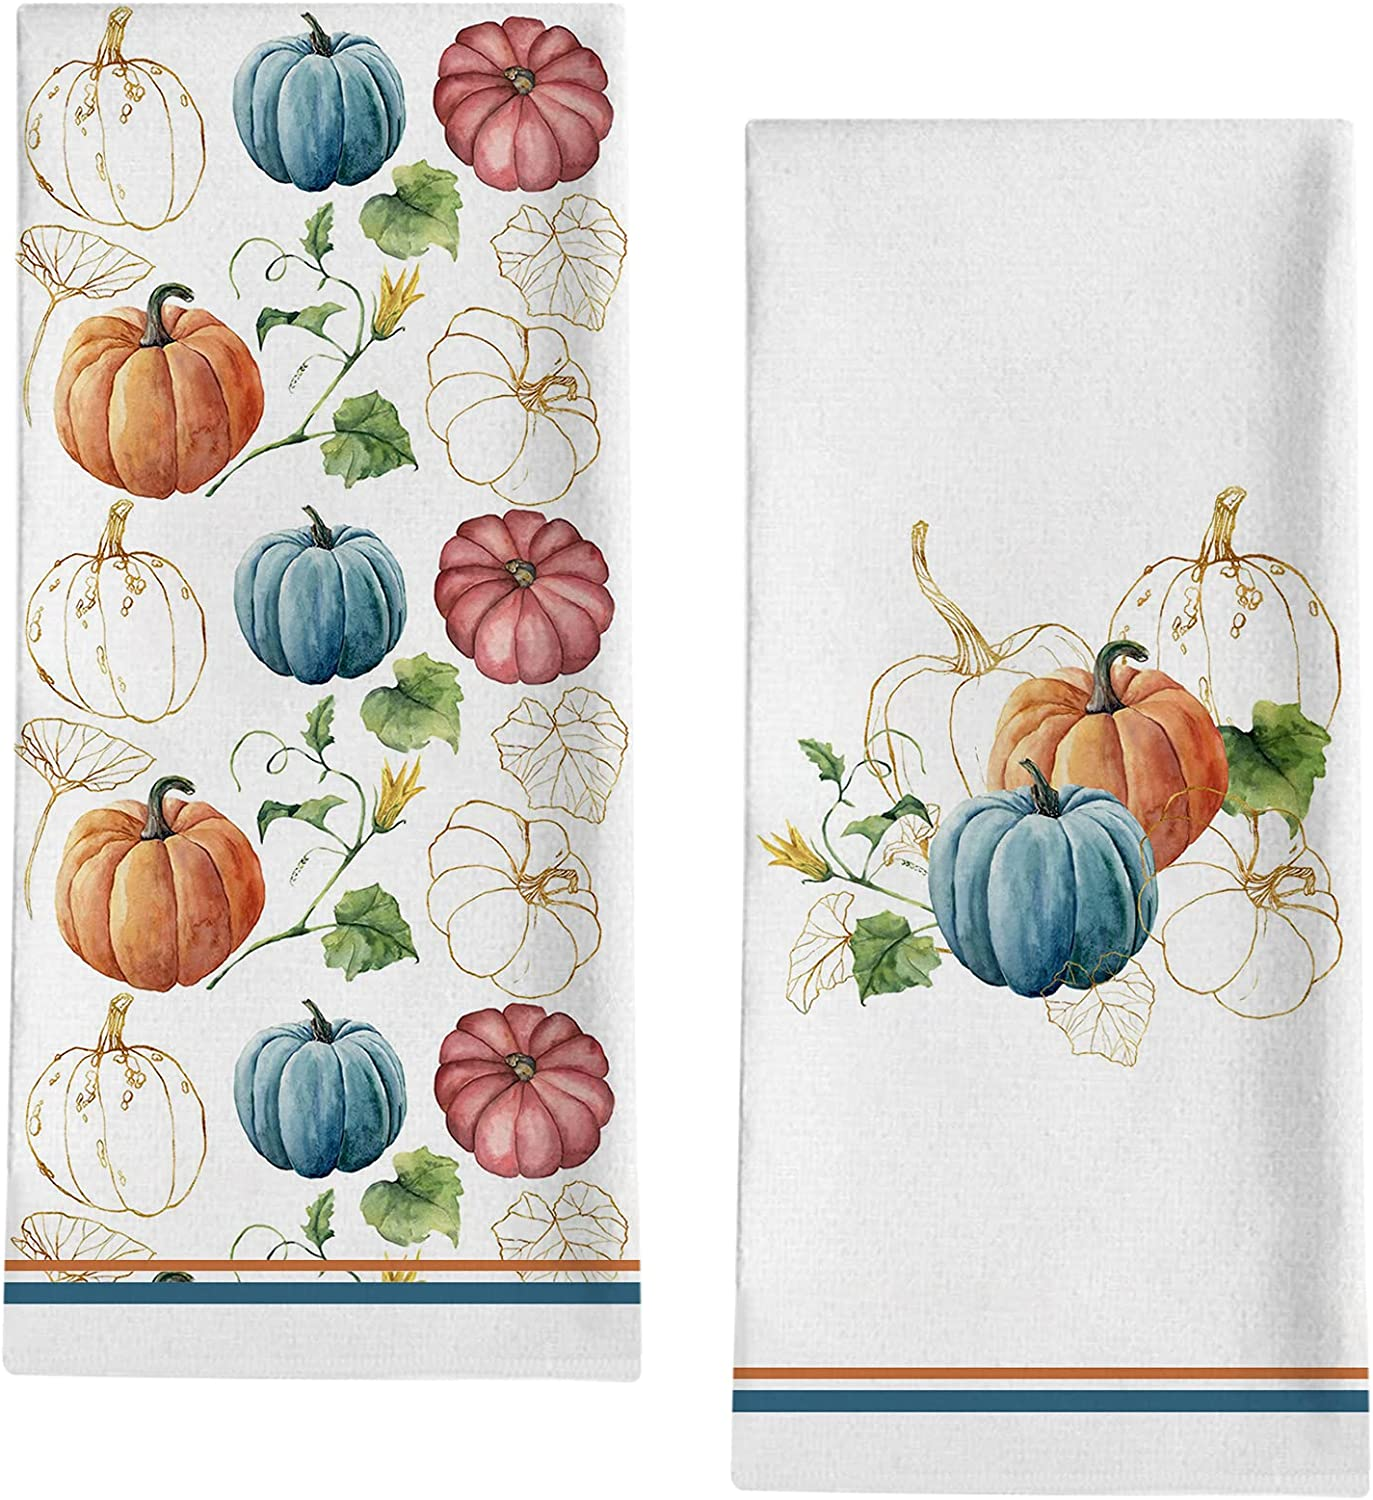 Seliem Fall Watercolor Blue Pumpkin Patch Kitchen Decorative Max 49% OFF New mail order Dis